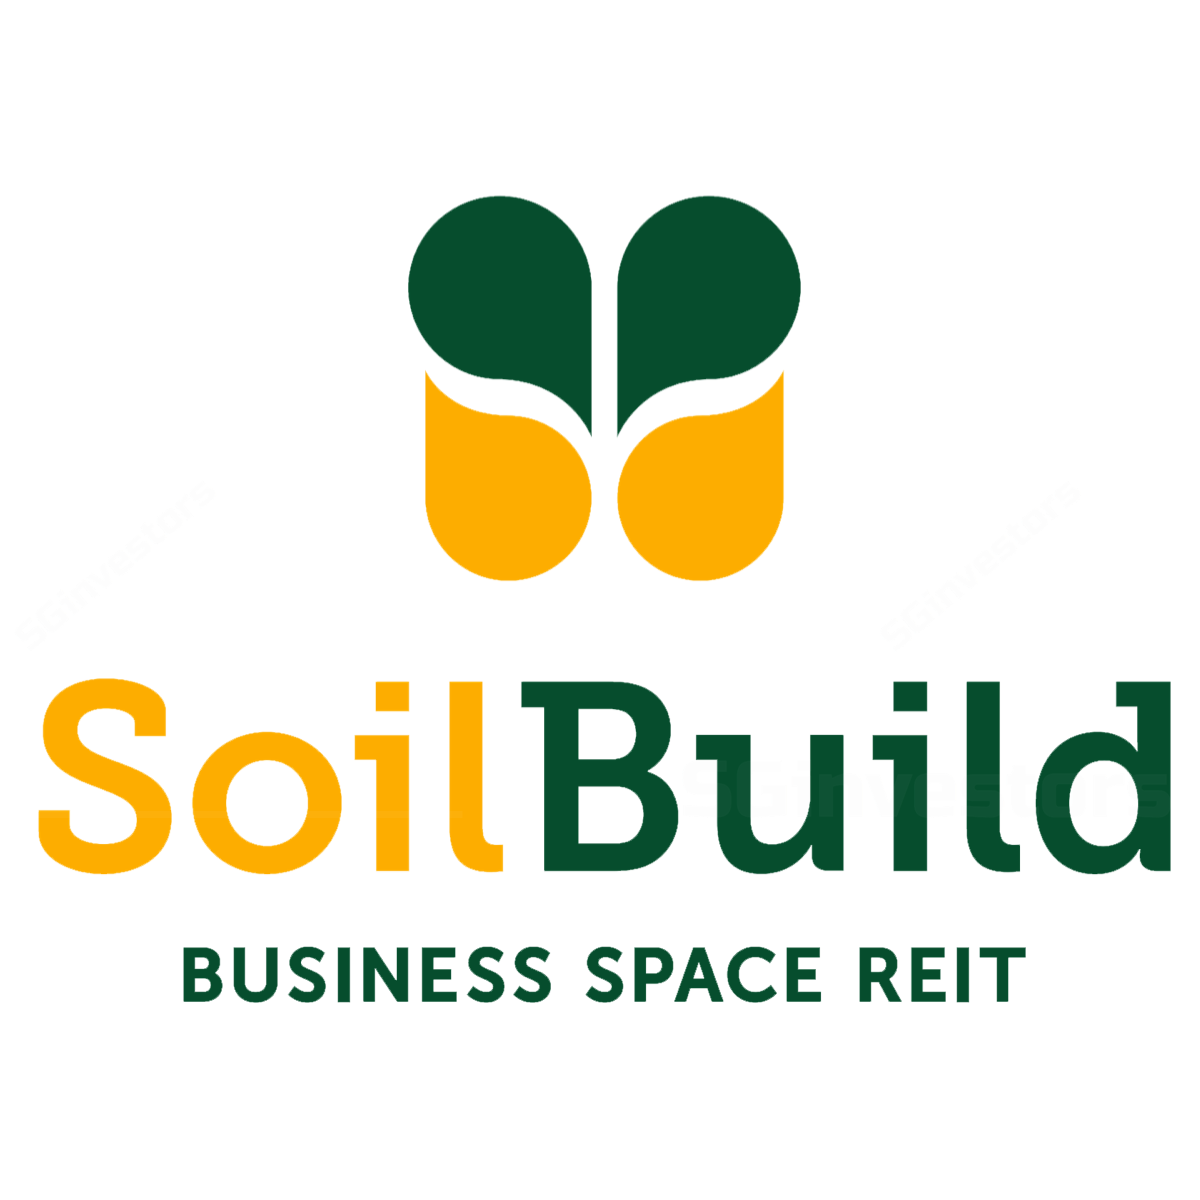 Soilbuild Business Space REIT - Phillip Securities 2017-07-14: 72 Loyang Way A Drag To Portfolio